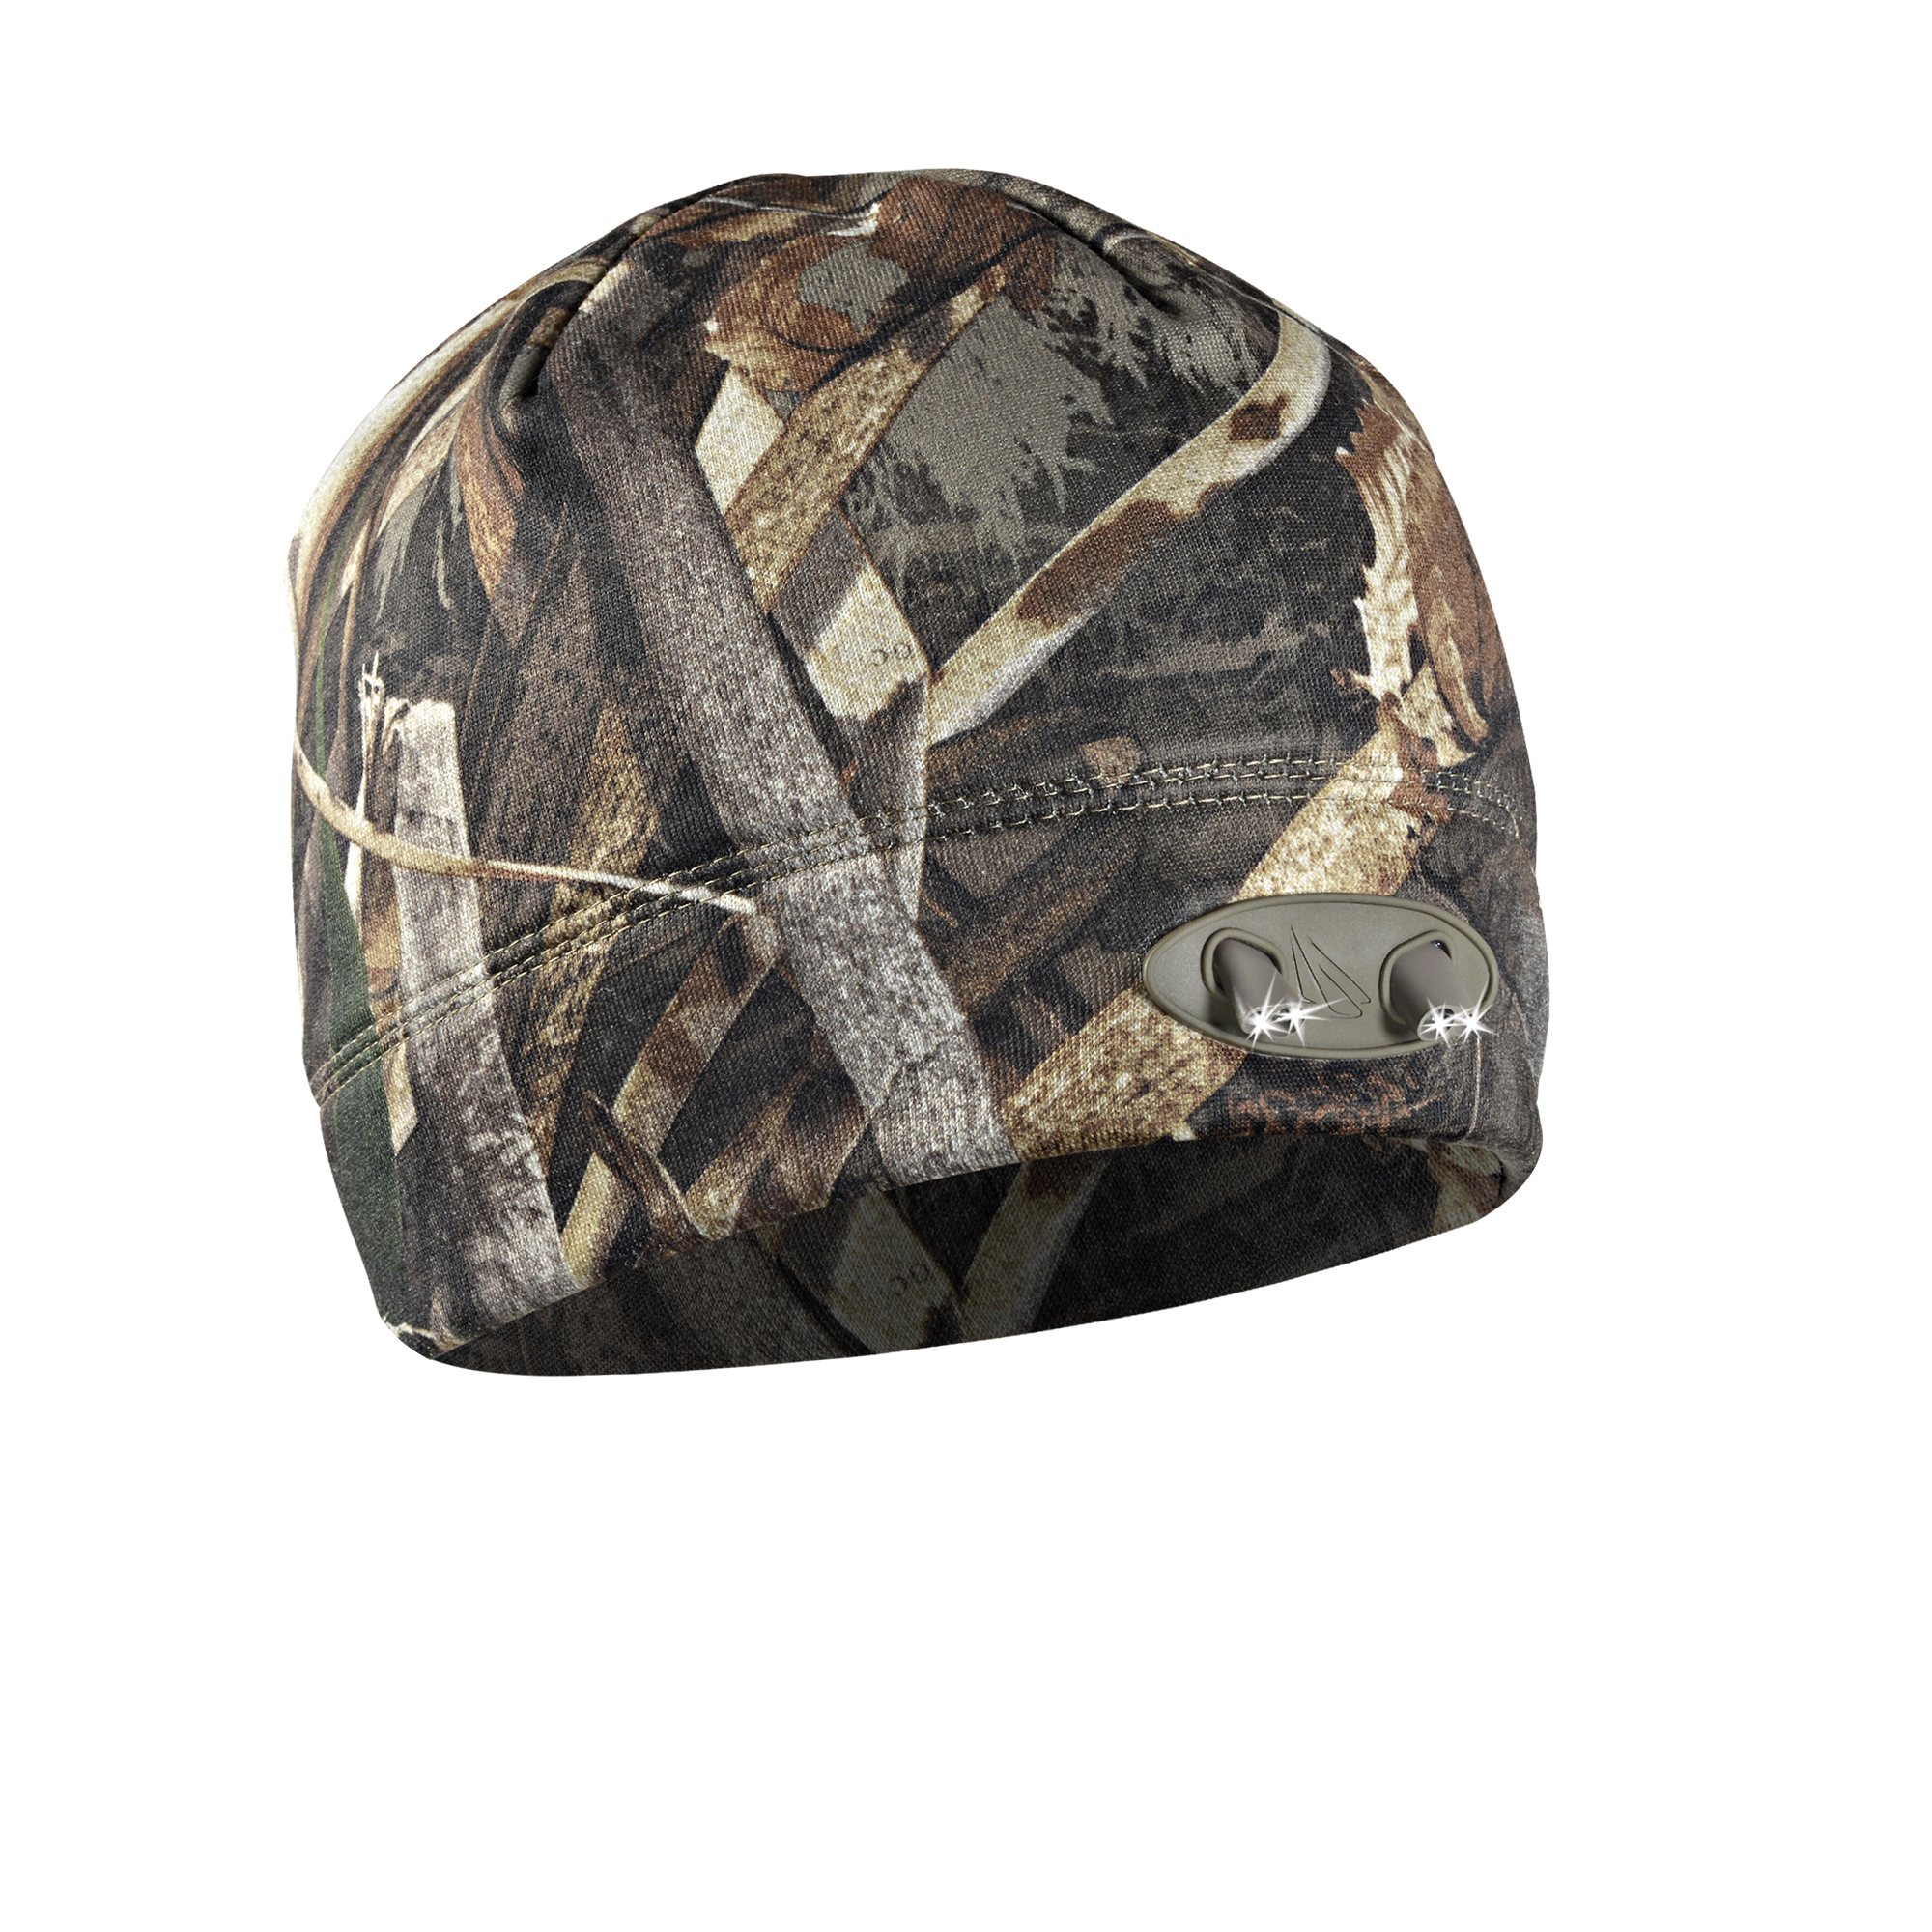 Powercap 3555 Compression Fleece Hunting Beanie Hat with LED lights, Max5 by Panther Vision